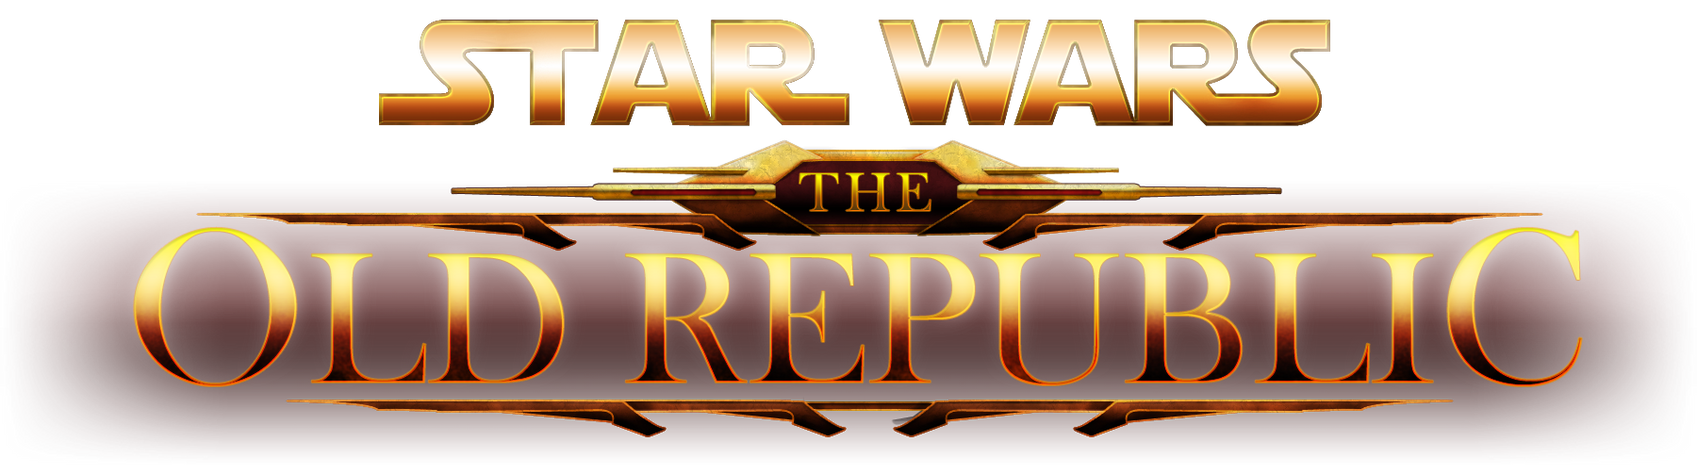 SWTOR Unofficial Logo by feshom on DeviantArt  SWTOR Unofficia...